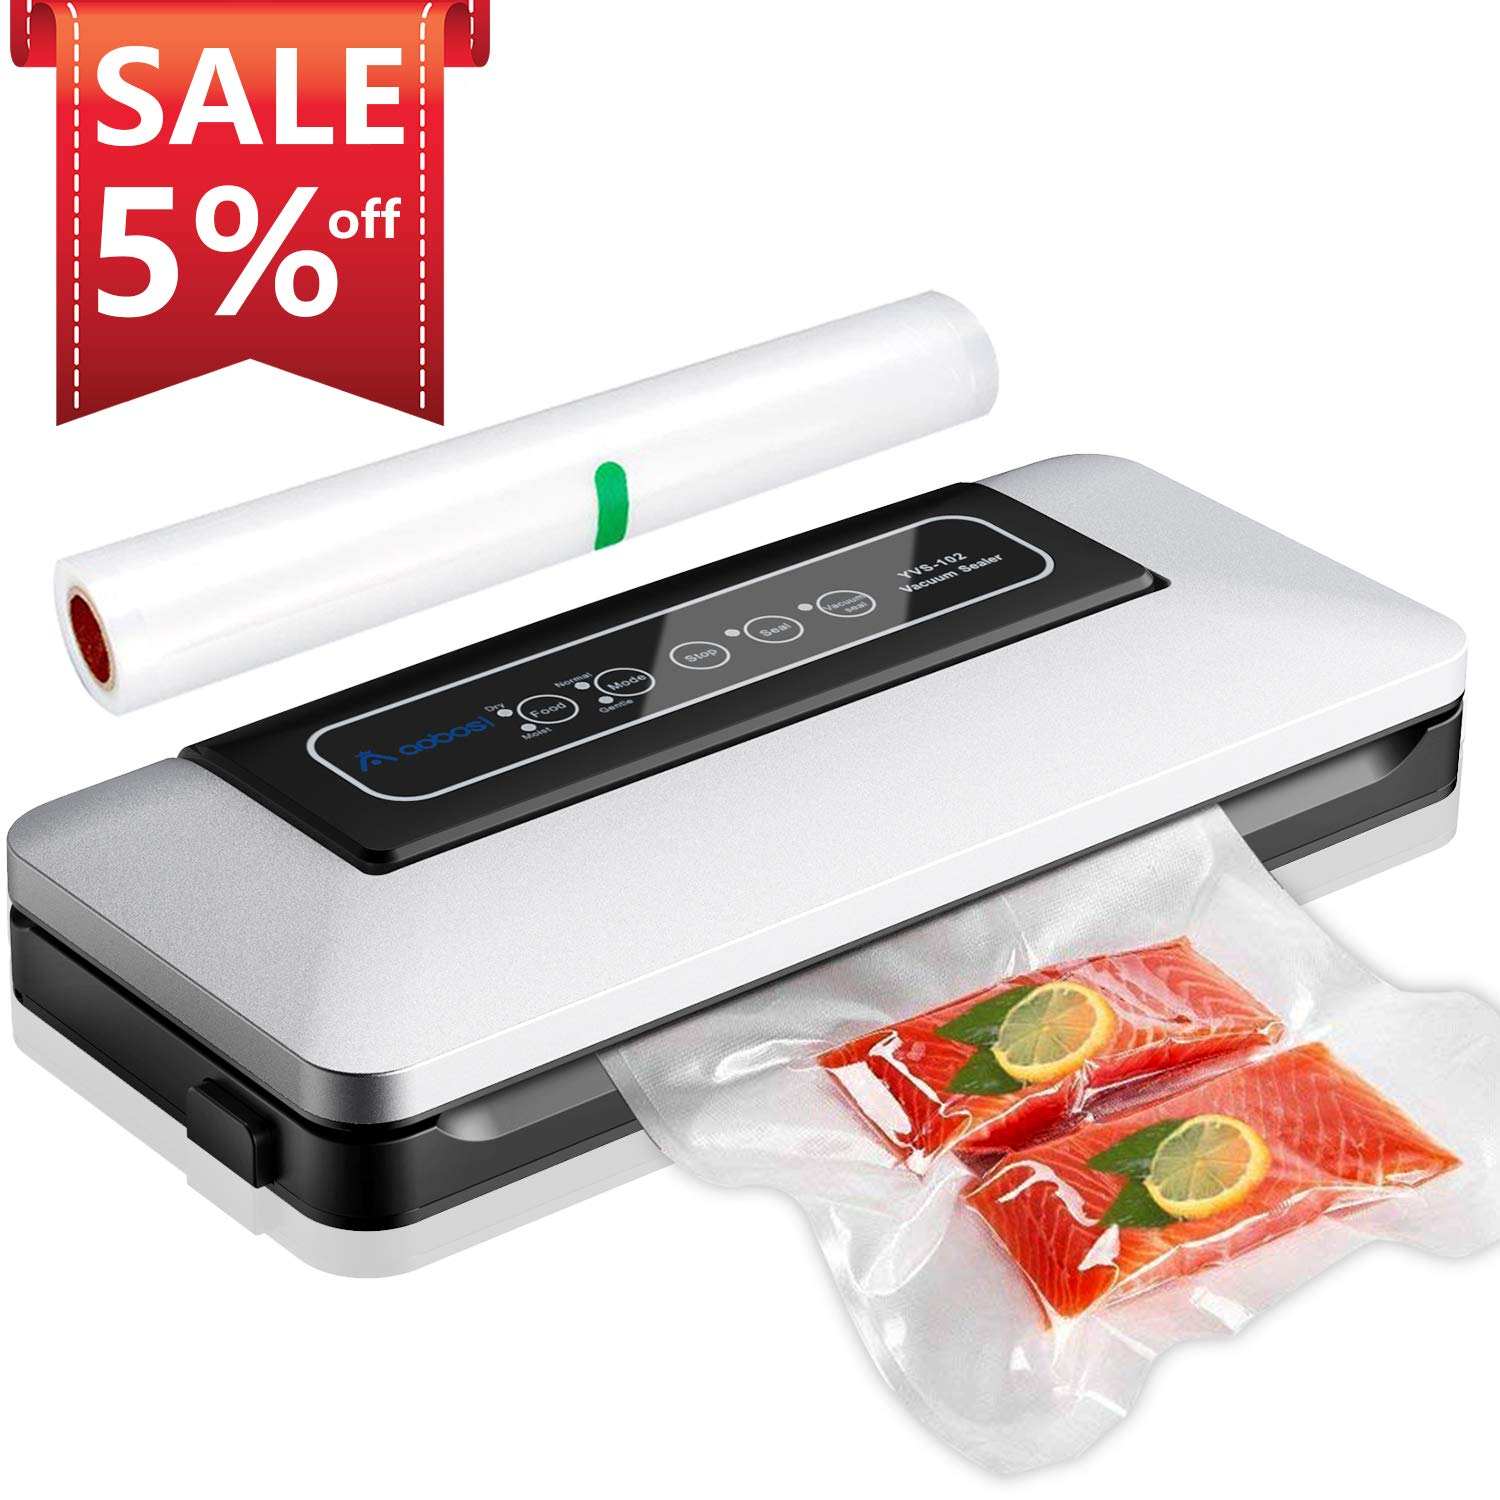 Aobosi Vacuum Sealer Automatic Vacuum Machine with BPA Free Bag Roll for Food Save and Sous Vide Cooking,Super Low Noise,Normal& Gentle Vacuum Modes,Multi-use Vacuum Packing Machine (Silver)